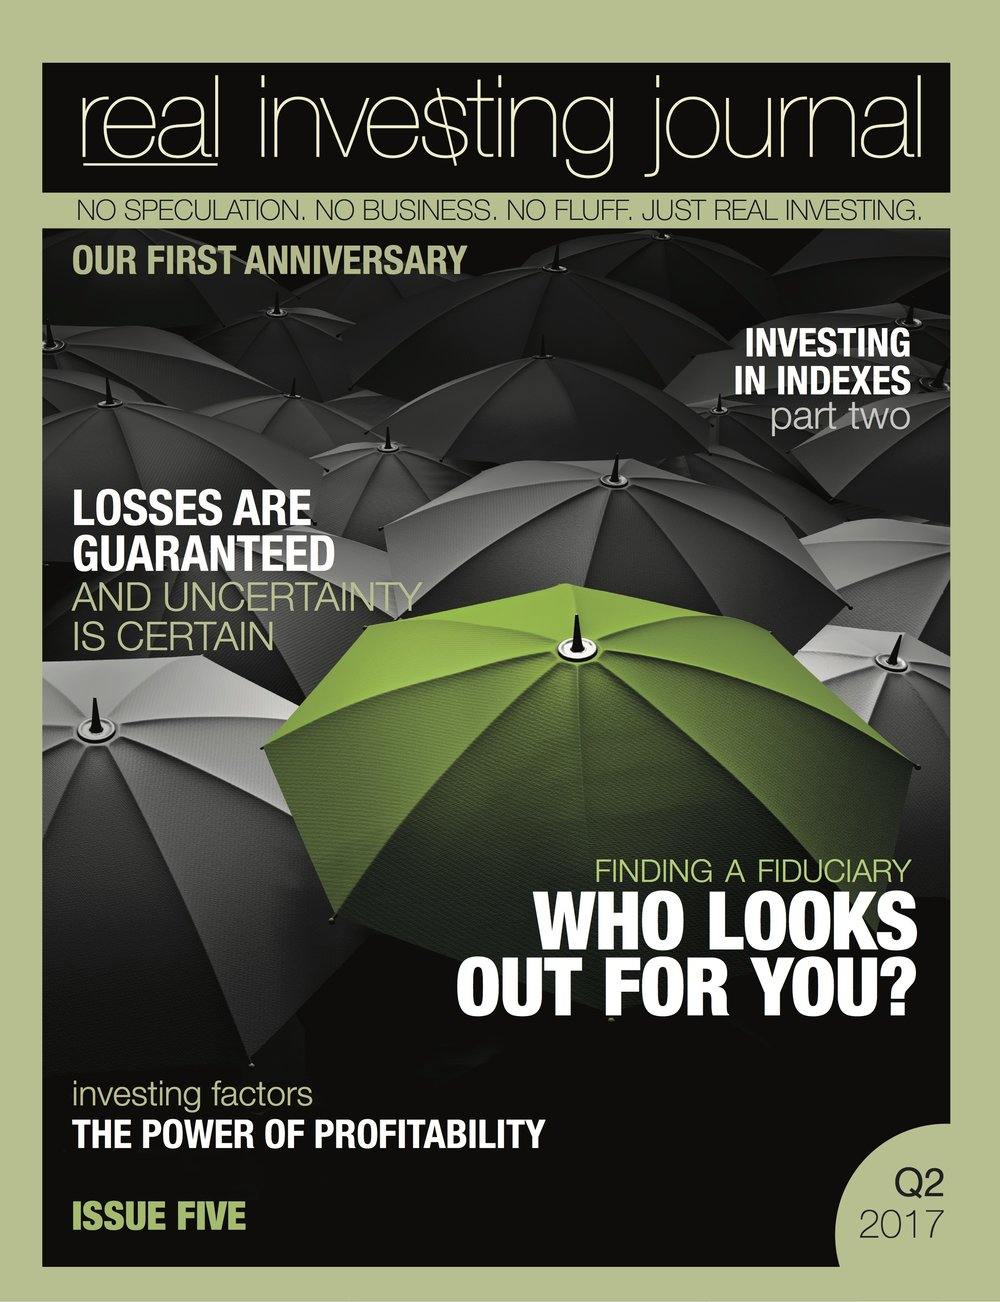 Issue Five of  real investing journal  - edited and published quarterly  by 3rd Act columnist and financial radio host Don McDonald